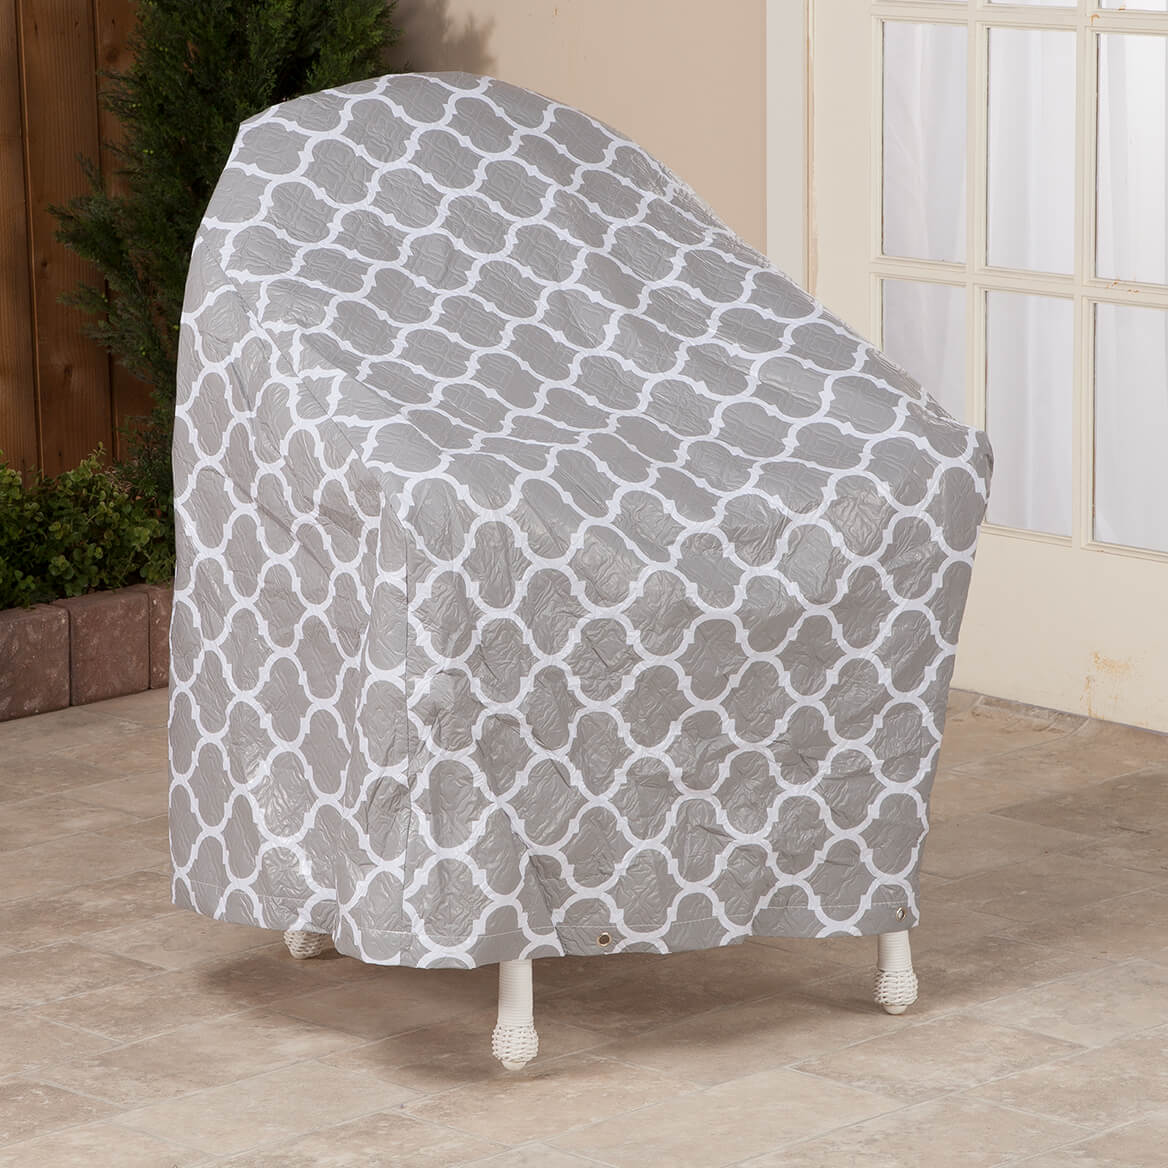 Chair Cover Patterns Trellis Pattern Quilted Chair Cover Miles Kimball